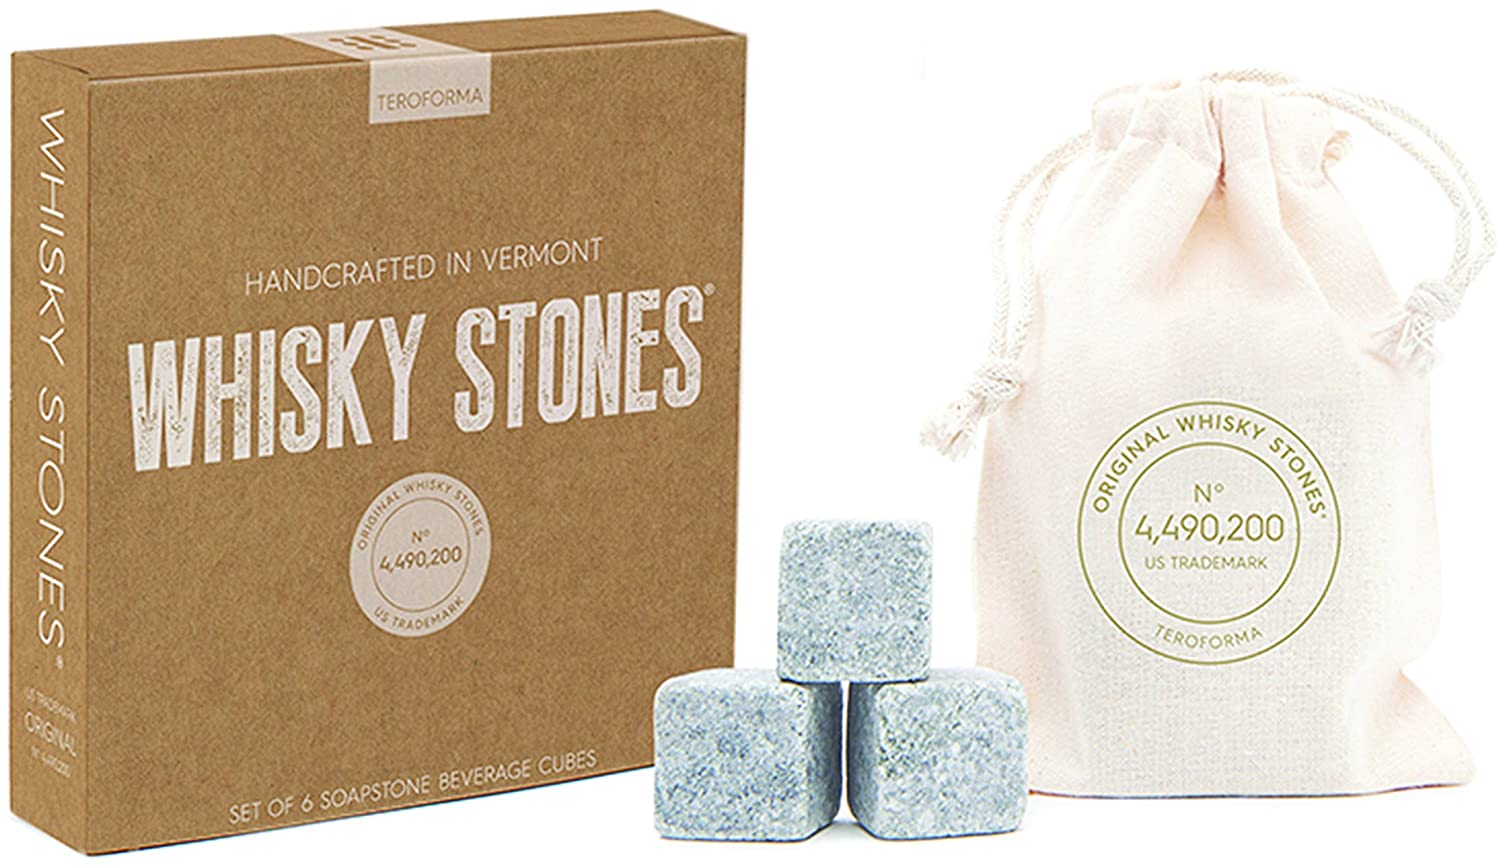 Whisky Stones CRAFT – Original Handcrafted Natural Soapstone Beverage Chilling Cubes (Set of 6) By Teroforma HW6S02/3-PARENT